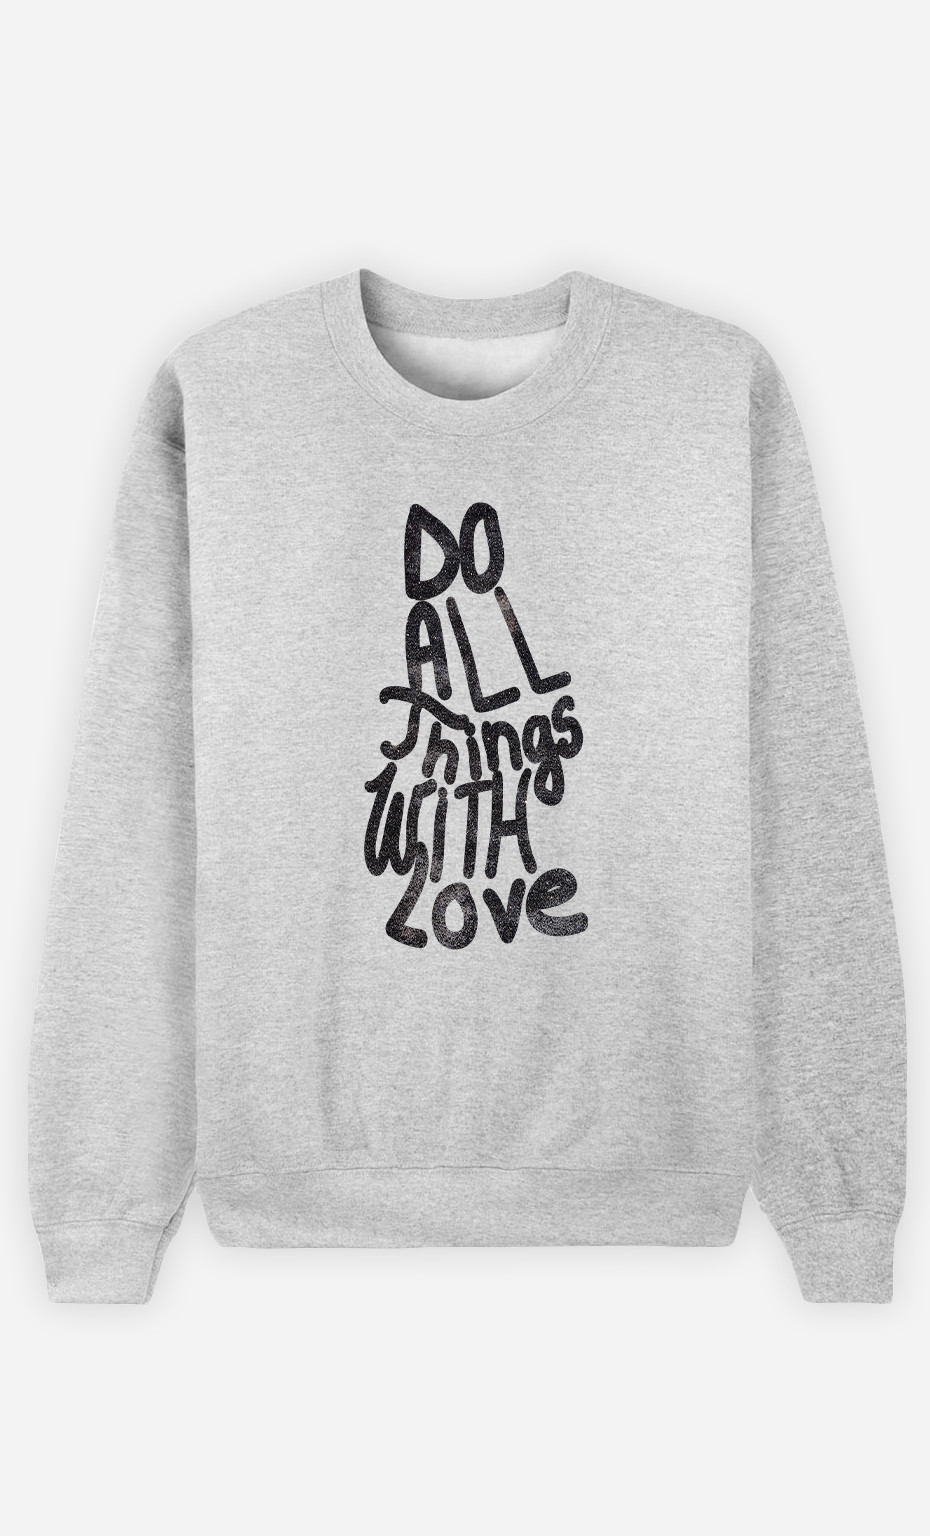 Woman Sweatshirt Do All Things With Love